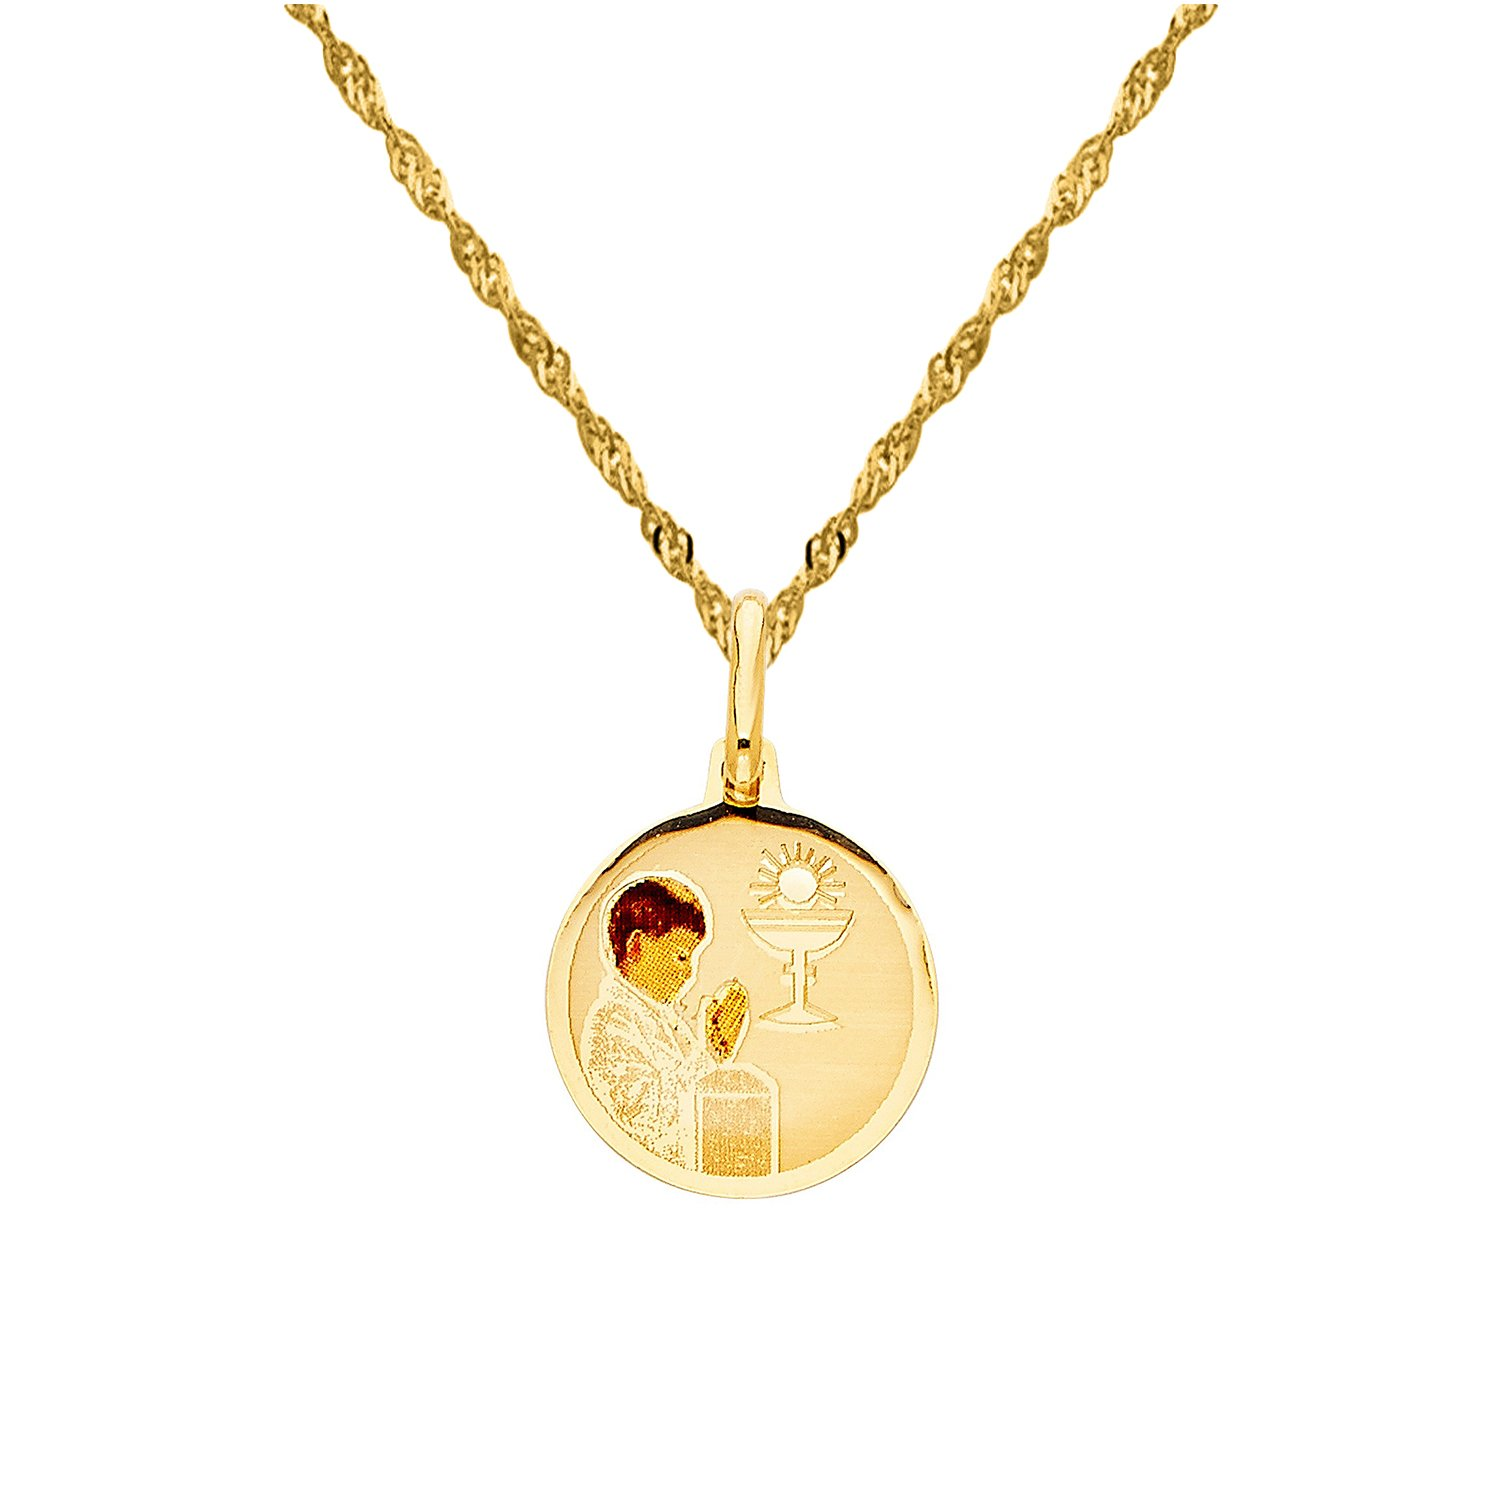 14k Yellow Gold Boy's First Communion Pendant with 1.2-mm Singapore Chain